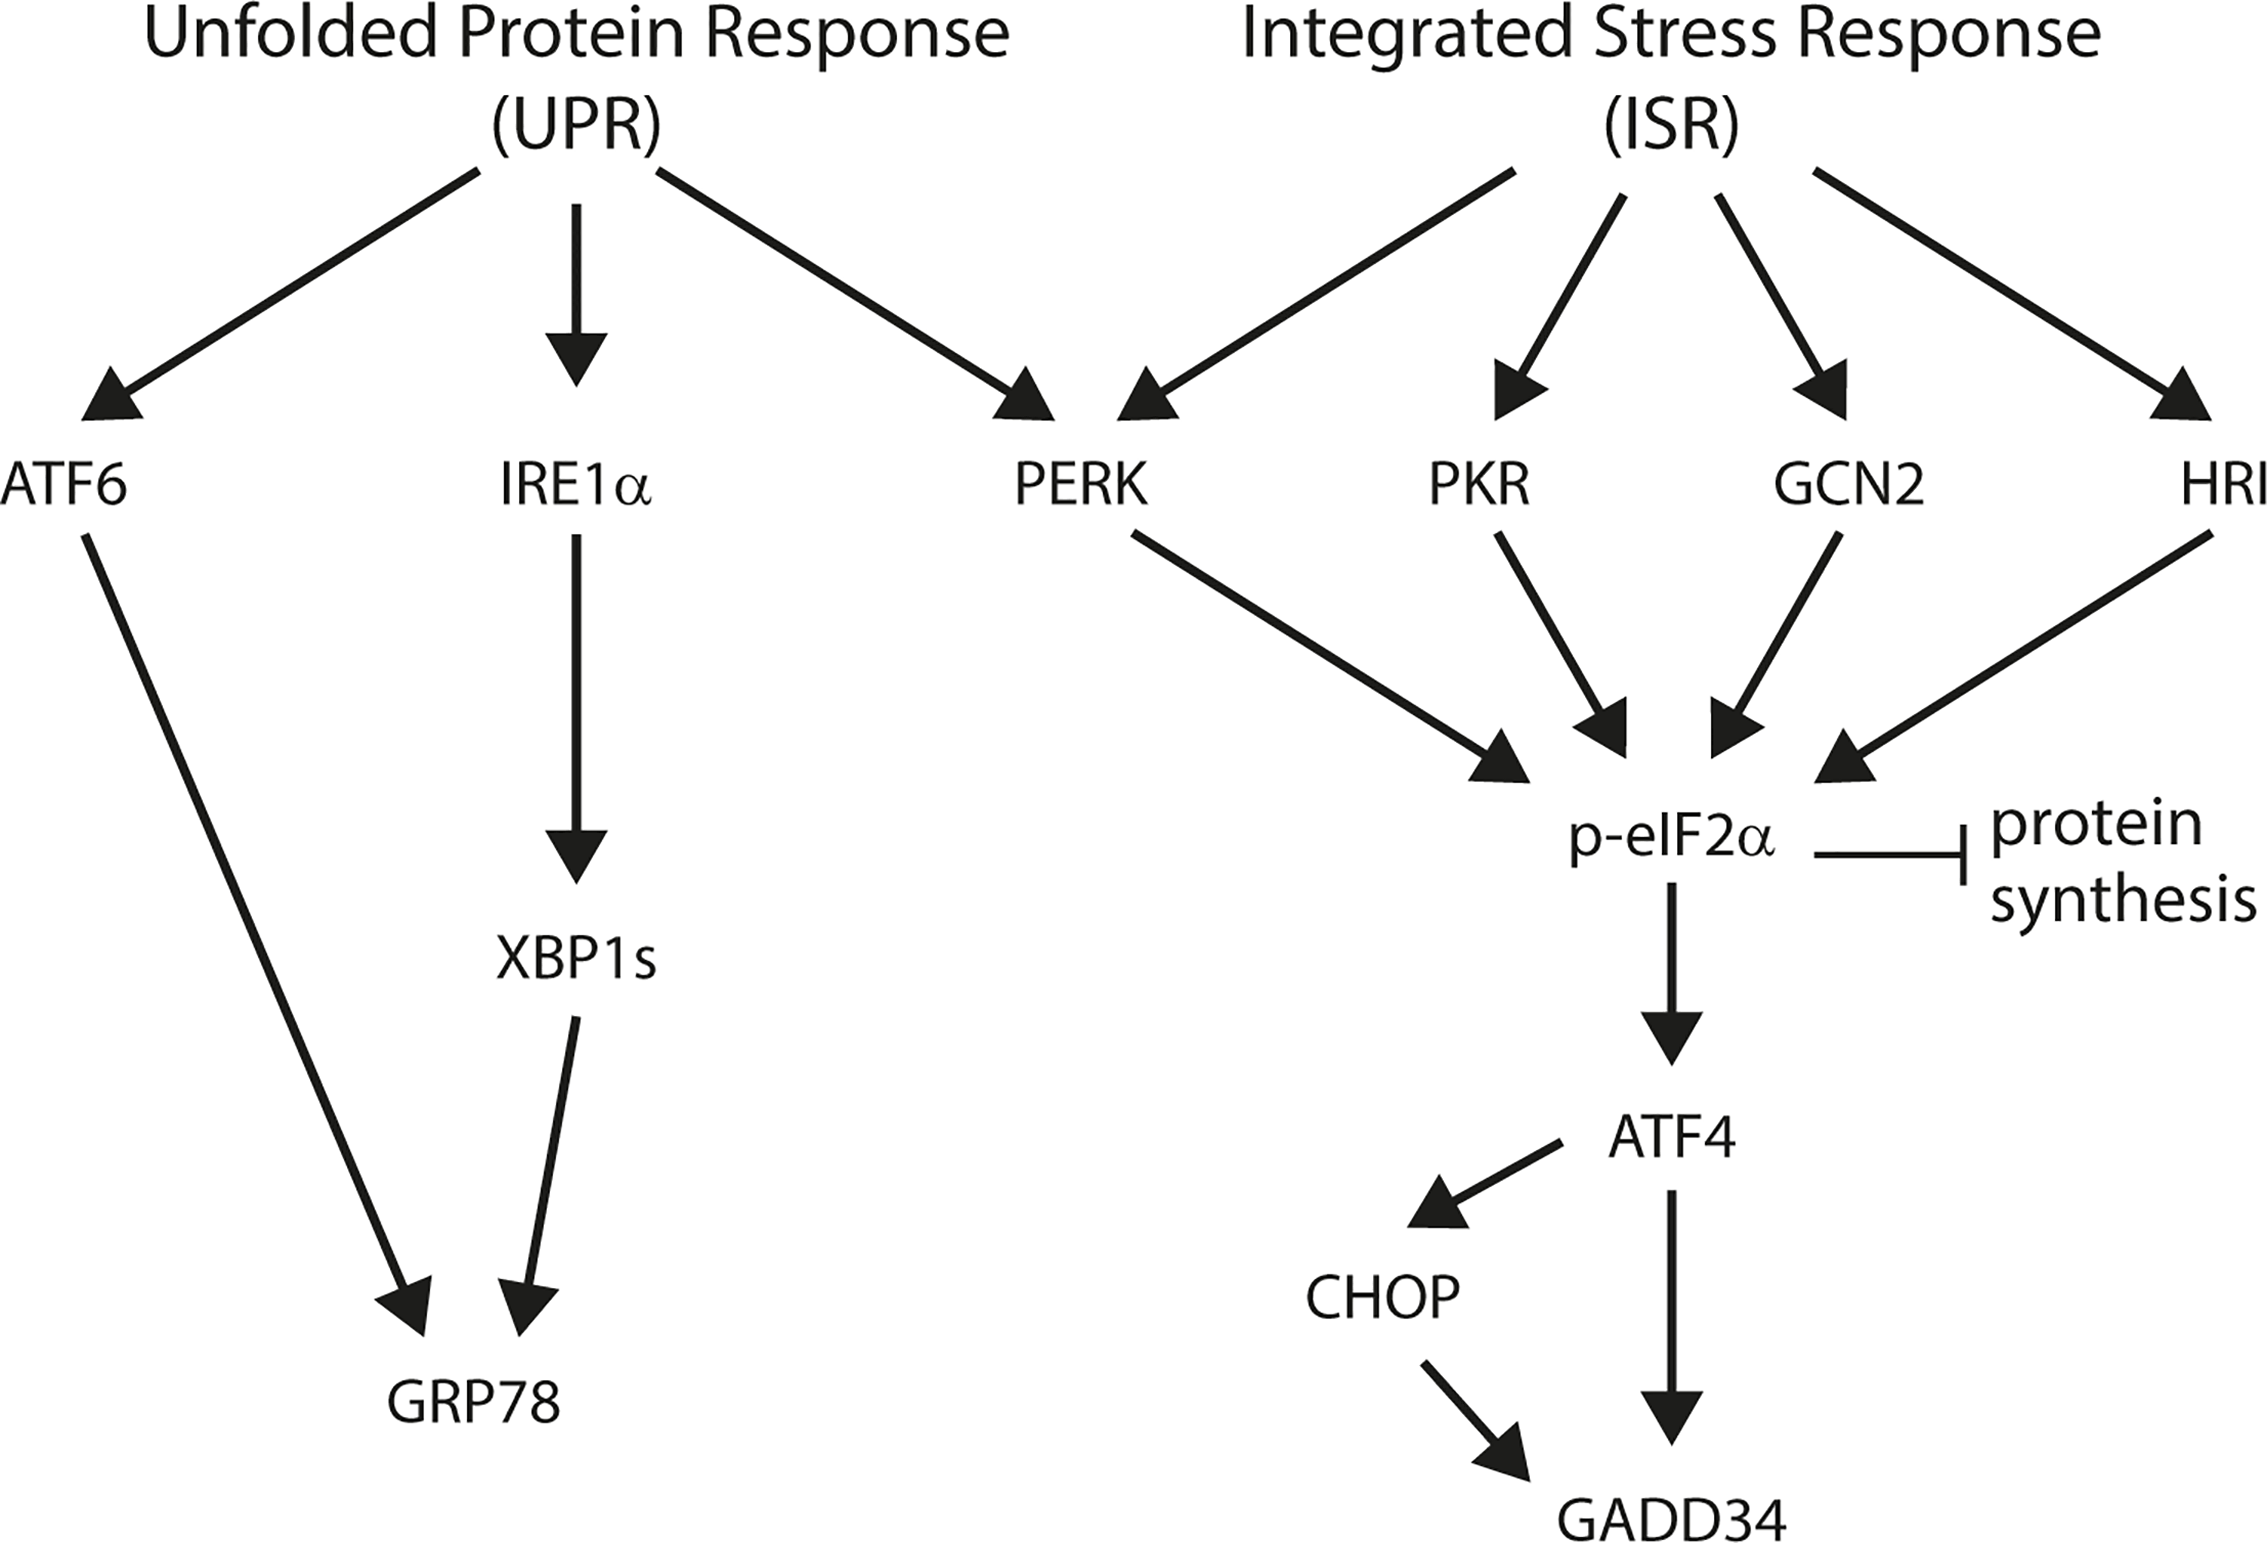 Schematic overview of the unfolded protein response (UPR) and integrated stress response (ISR).